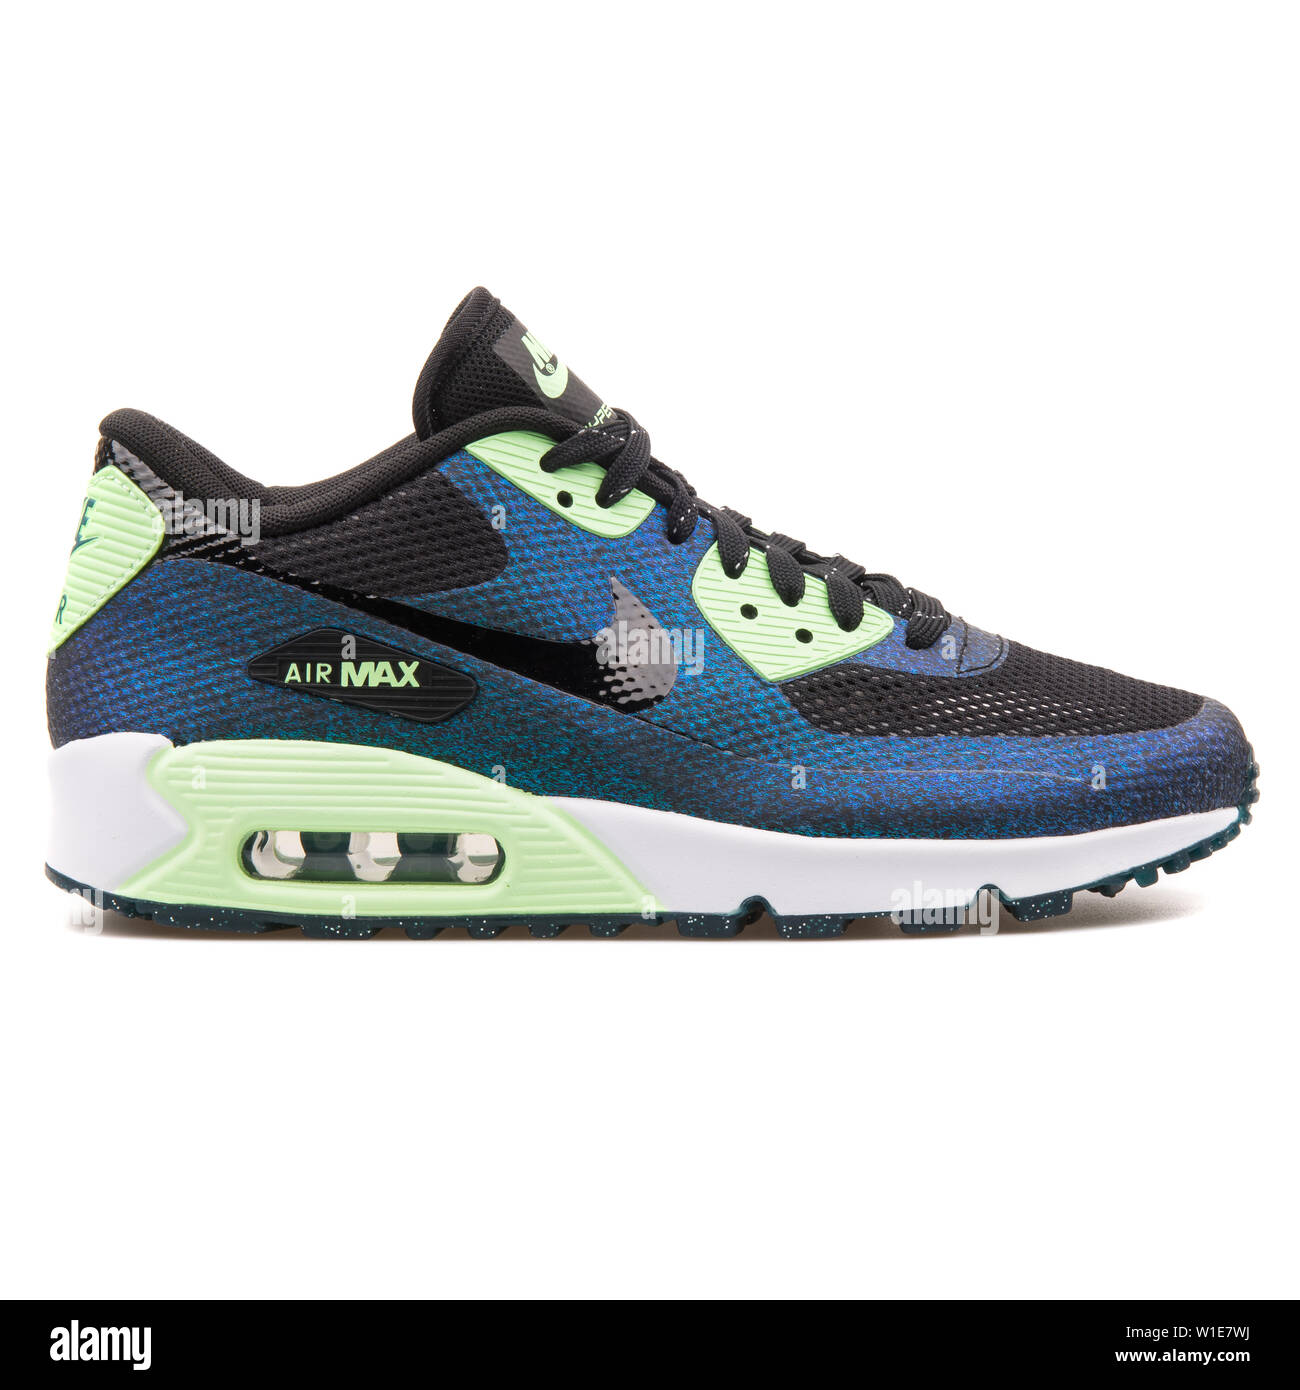 billig Nike Air Max 90 HYP WC QS Black And Green Teal